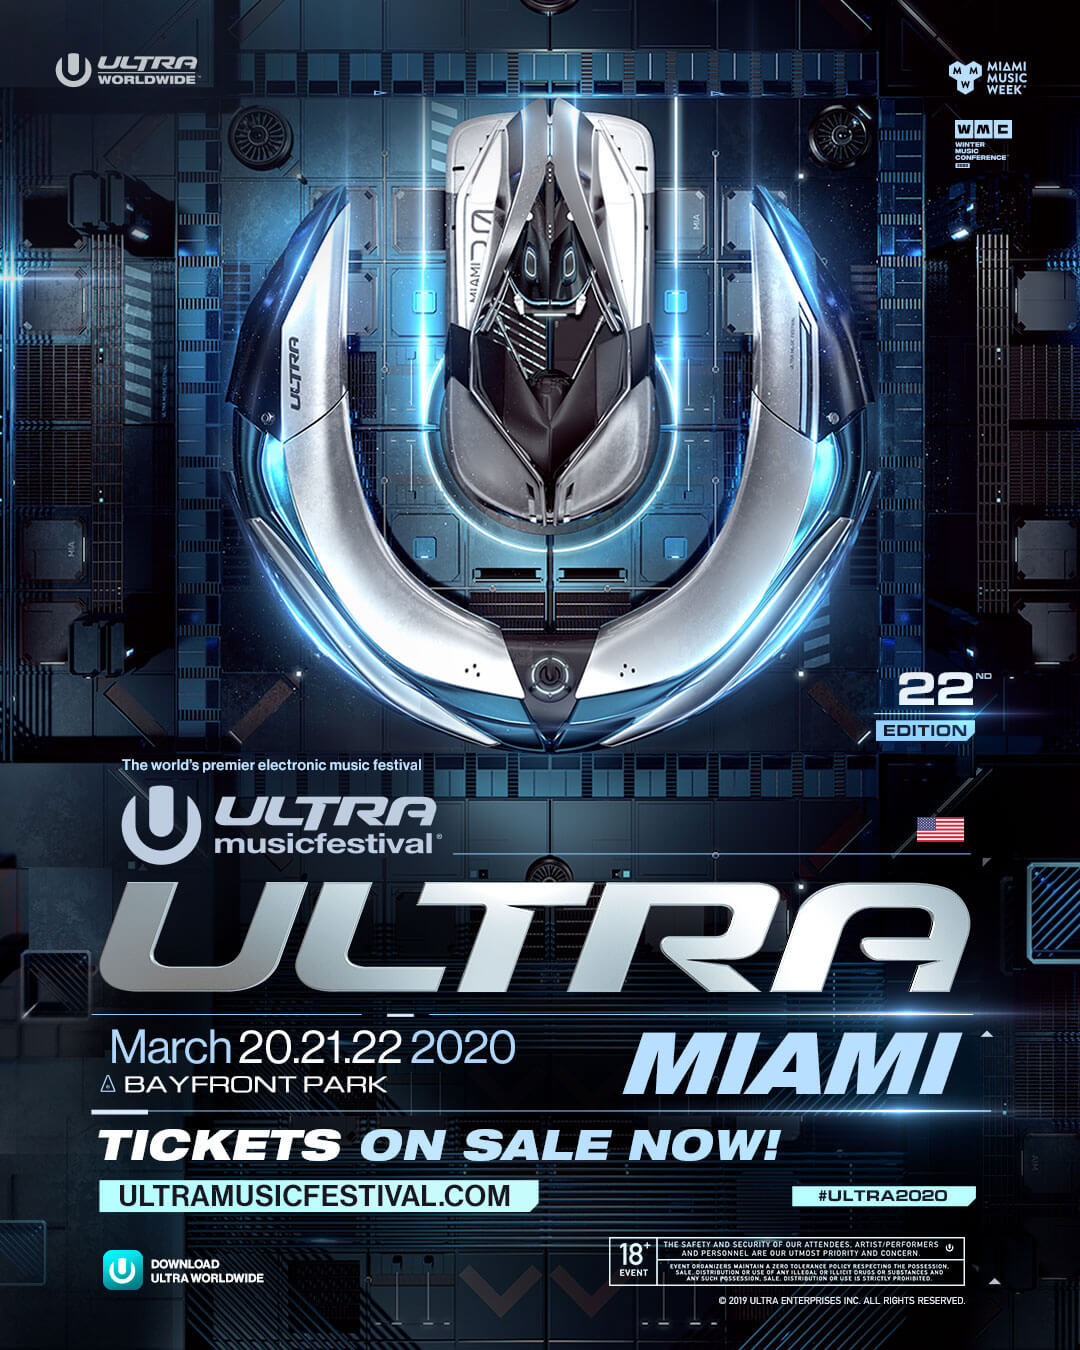 Limited Tickets On Sale for ULTRA Music Festival 2020